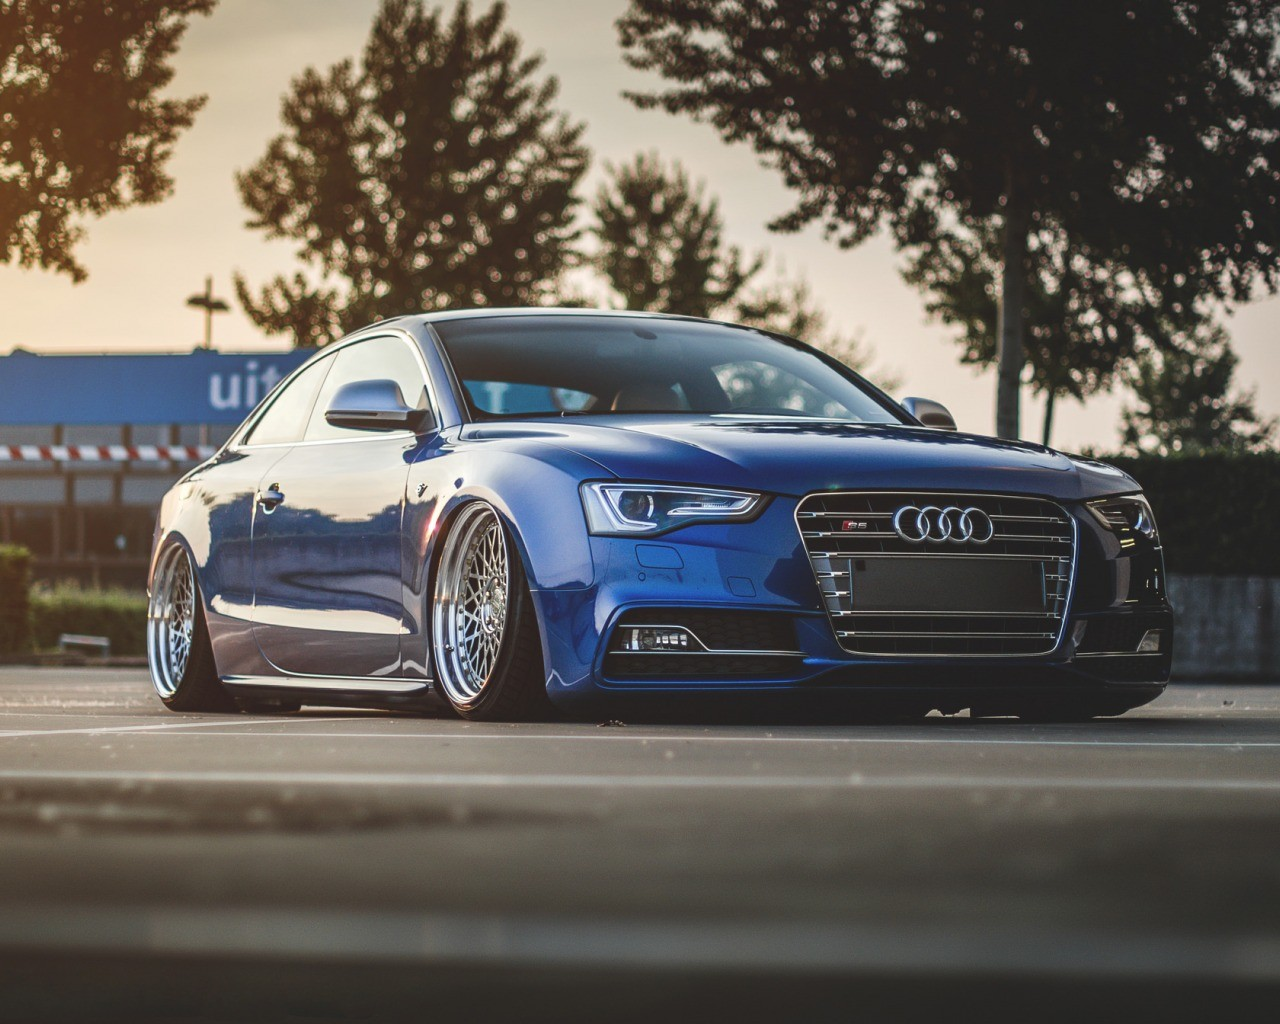 General 1280x1024 car luxury cars Audi Audi S5 airride